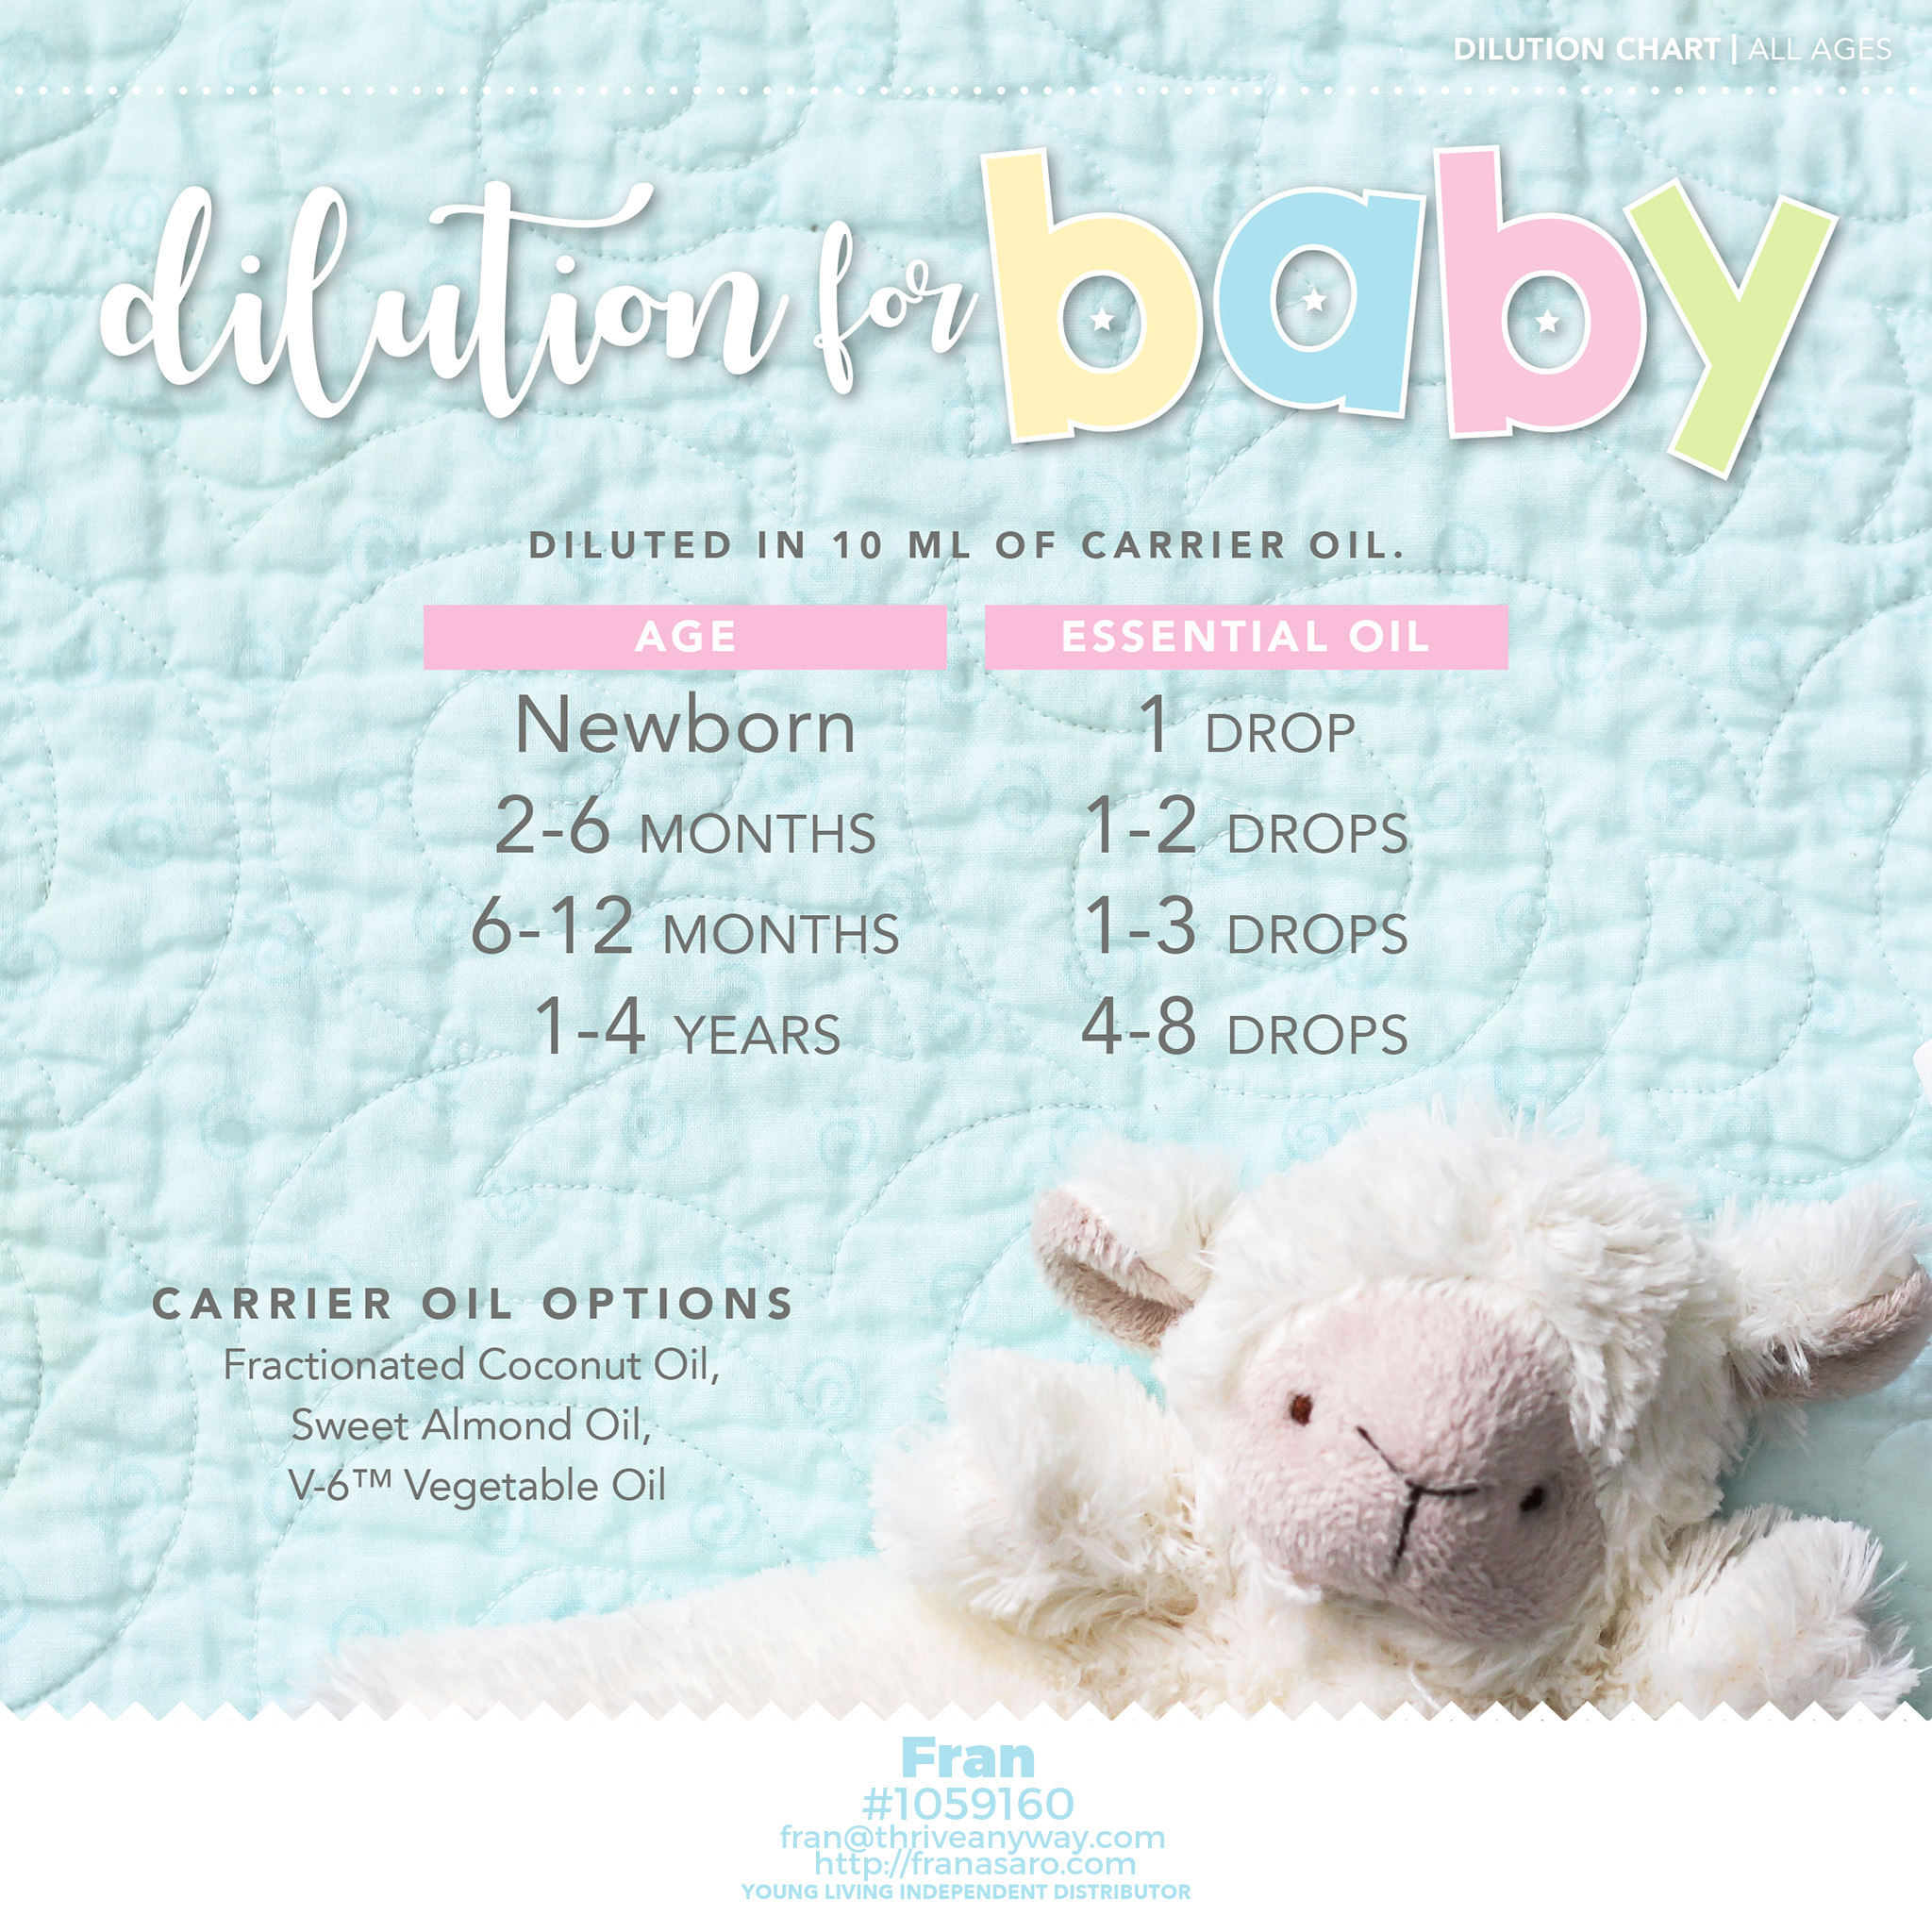 dilution chart for baby